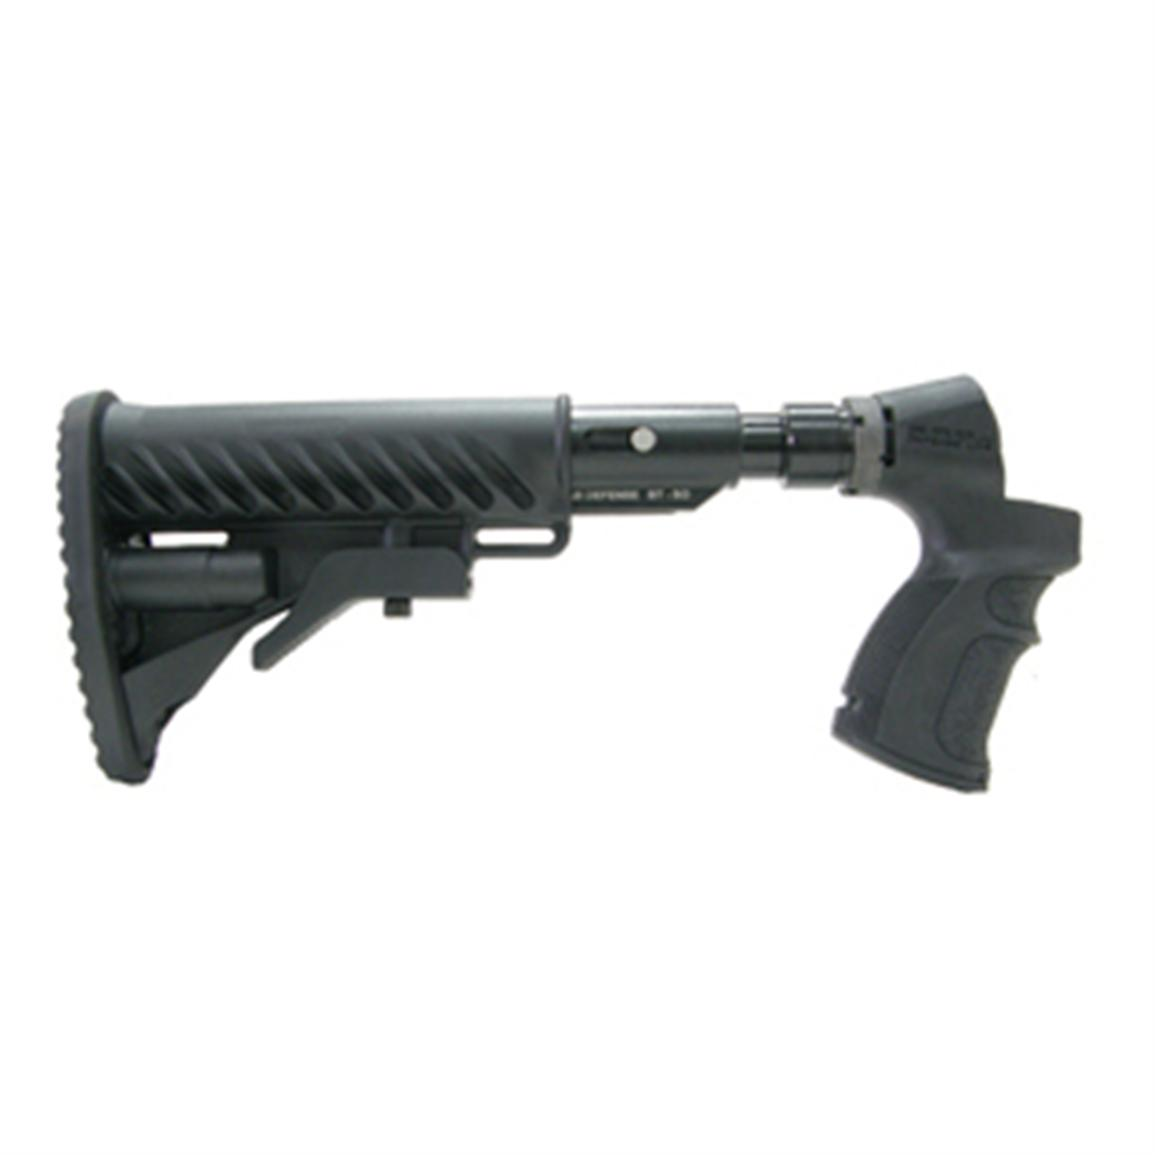 Mako® AR-15 / M4-style Collapsible Buttstock with Shock Absorber for Mossberg 500